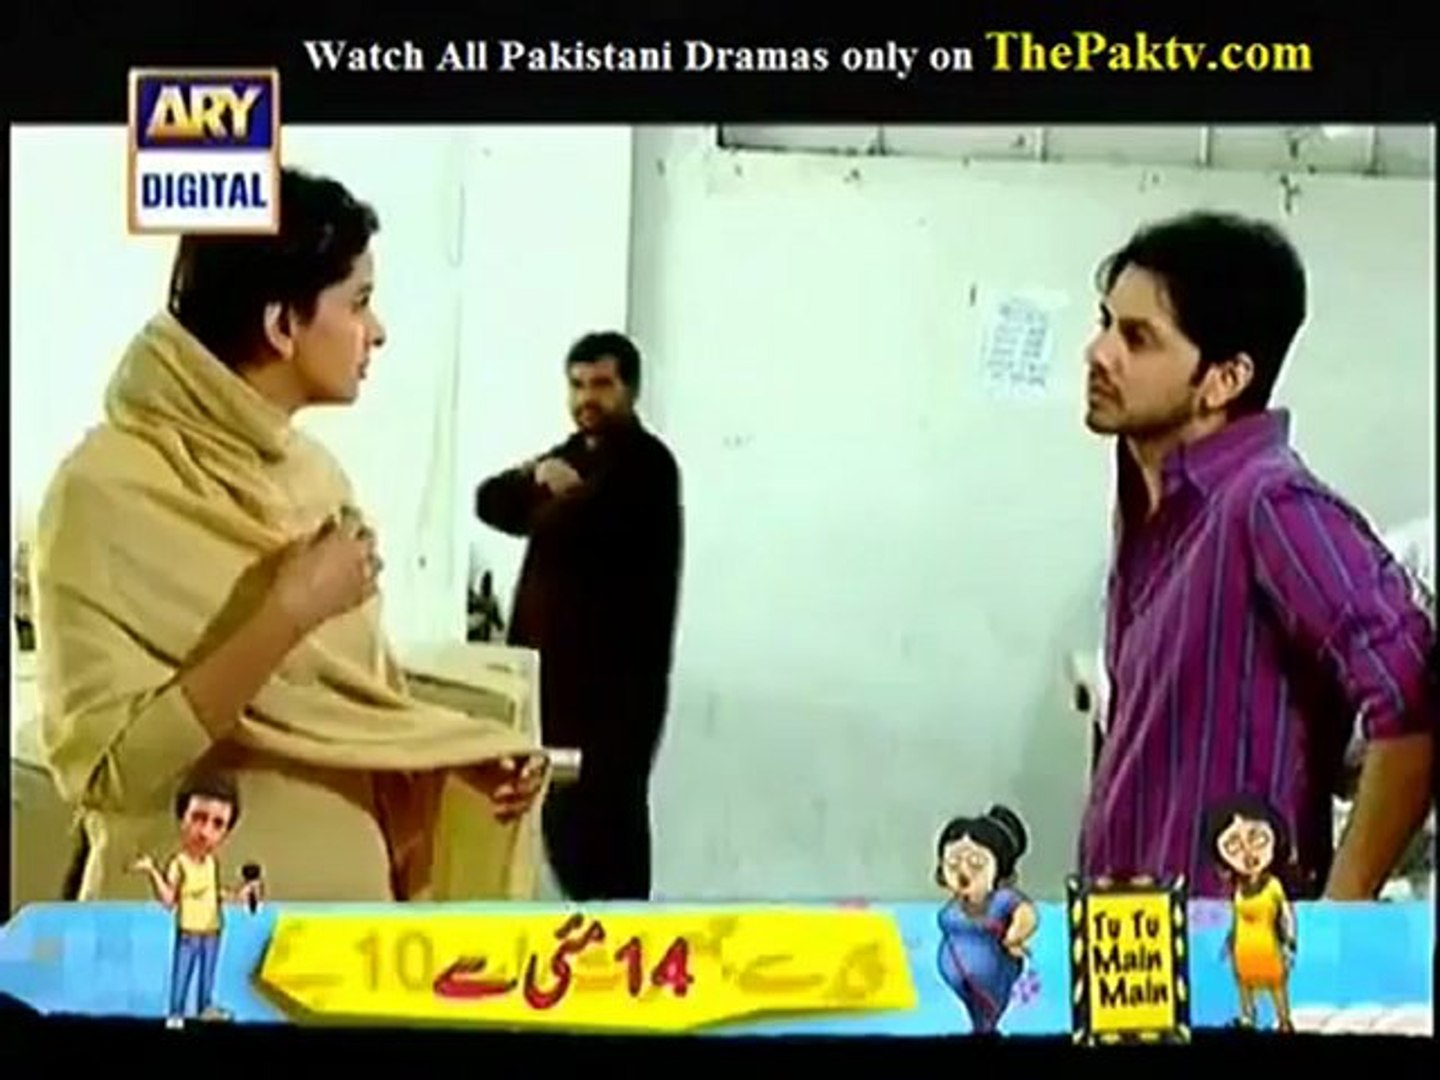 Thakan Episode 1 By Ary Digital [High Quality] - Part 1/2